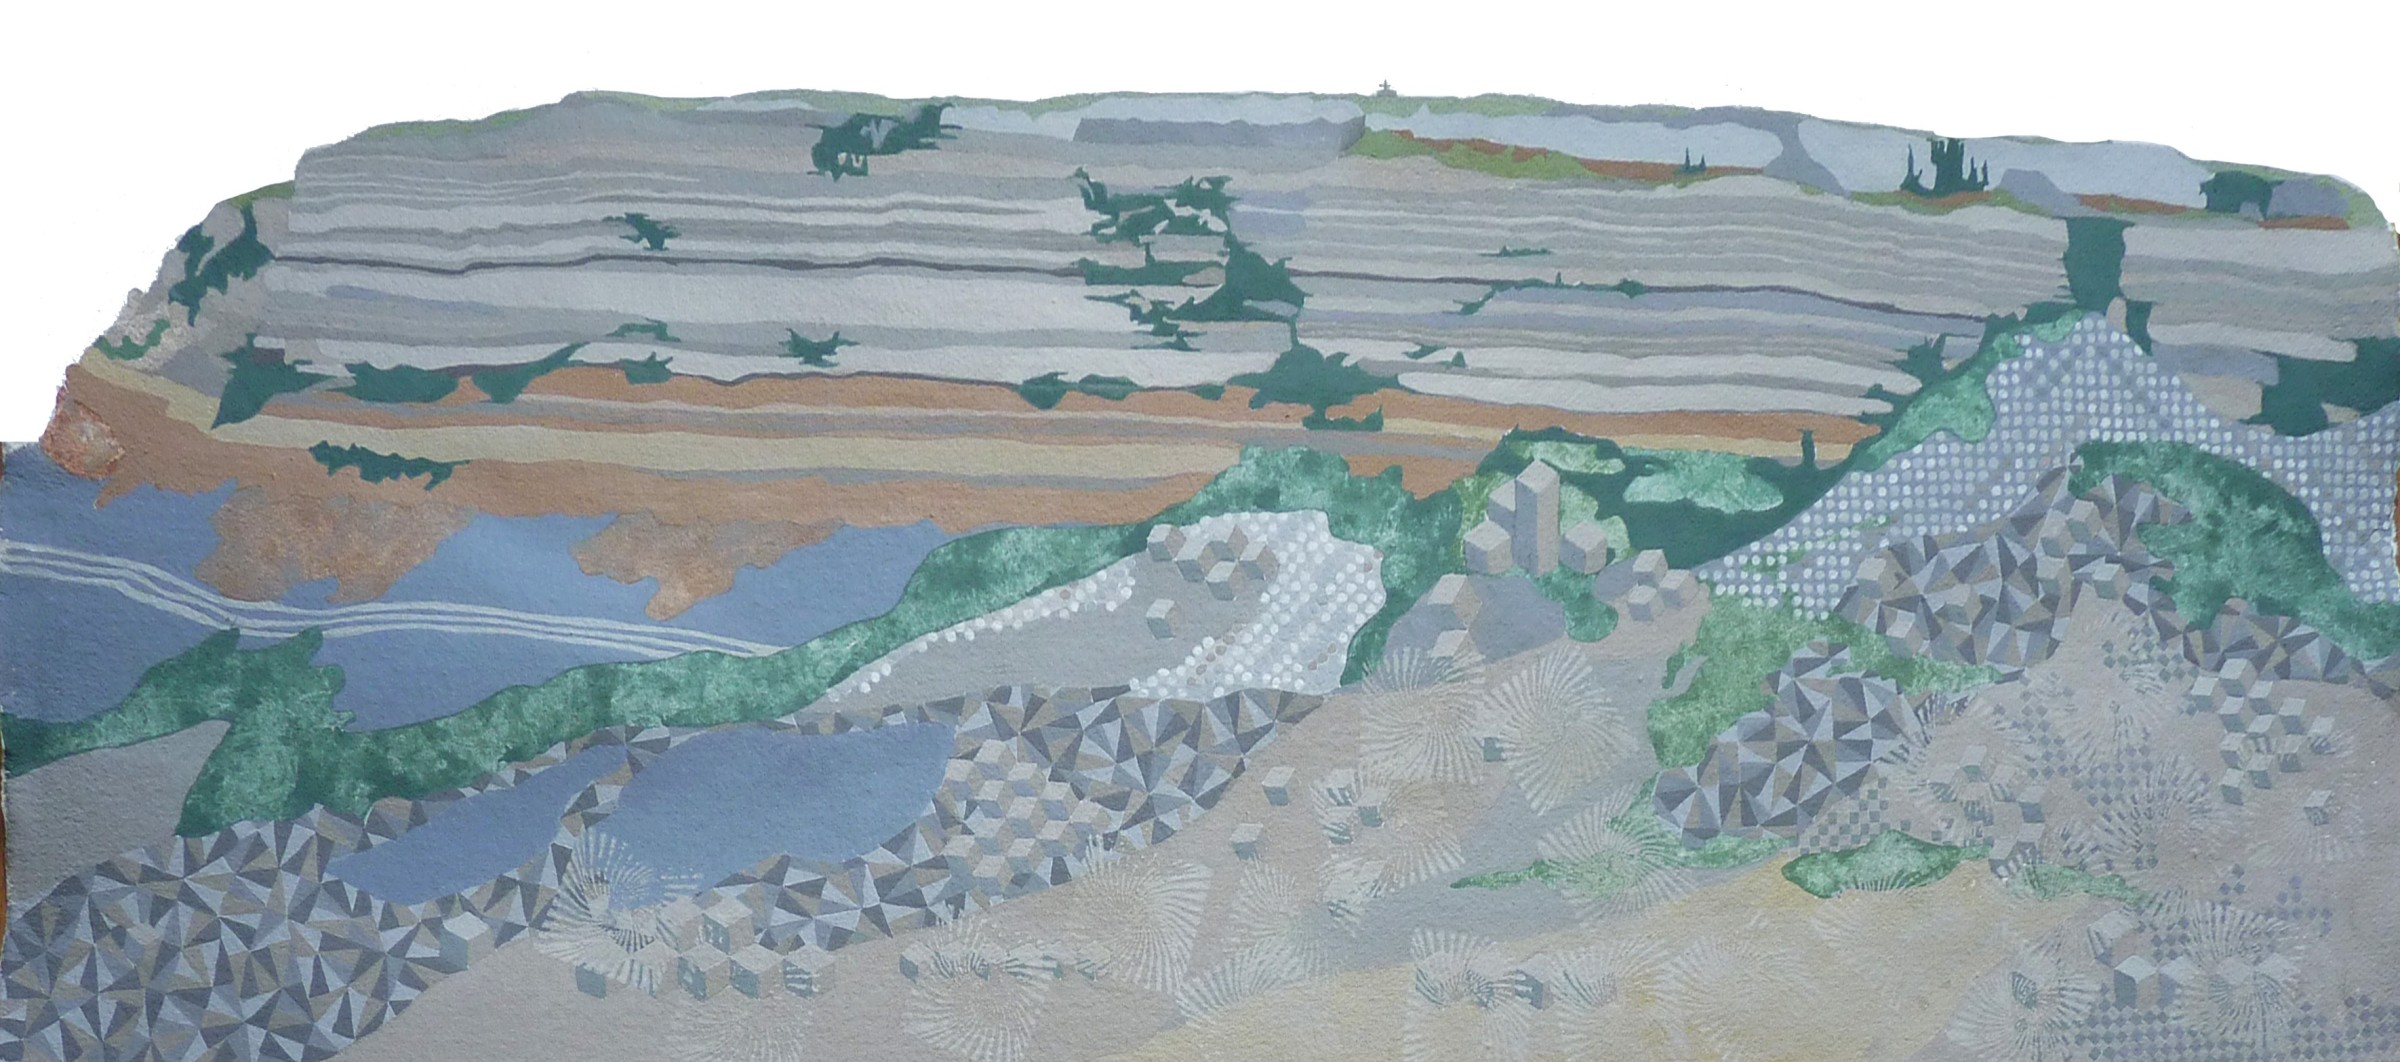 <span class=&#34;link fancybox-details-link&#34;><a href=&#34;/exhibitions/16/works/image_standalone399/&#34;>View Detail Page</a></span><p>Sally Maltby,&#160;<em>St Aldheims Head, Jurassic Coast</em>, &#163;900</p>